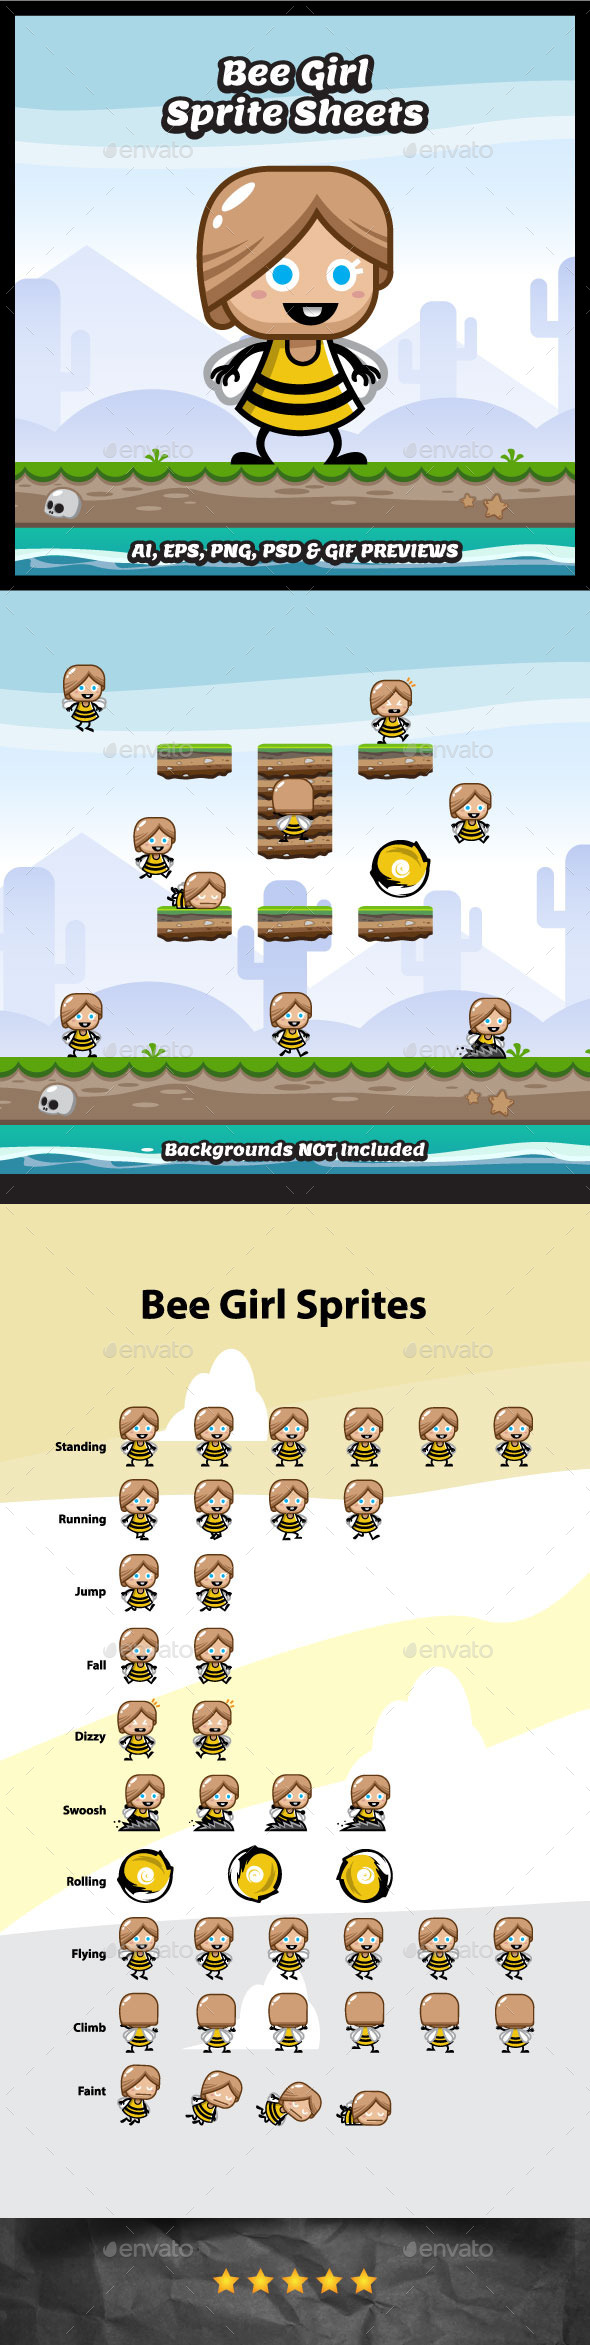 Bee Girl Game Character Spritesheets (Sprites)